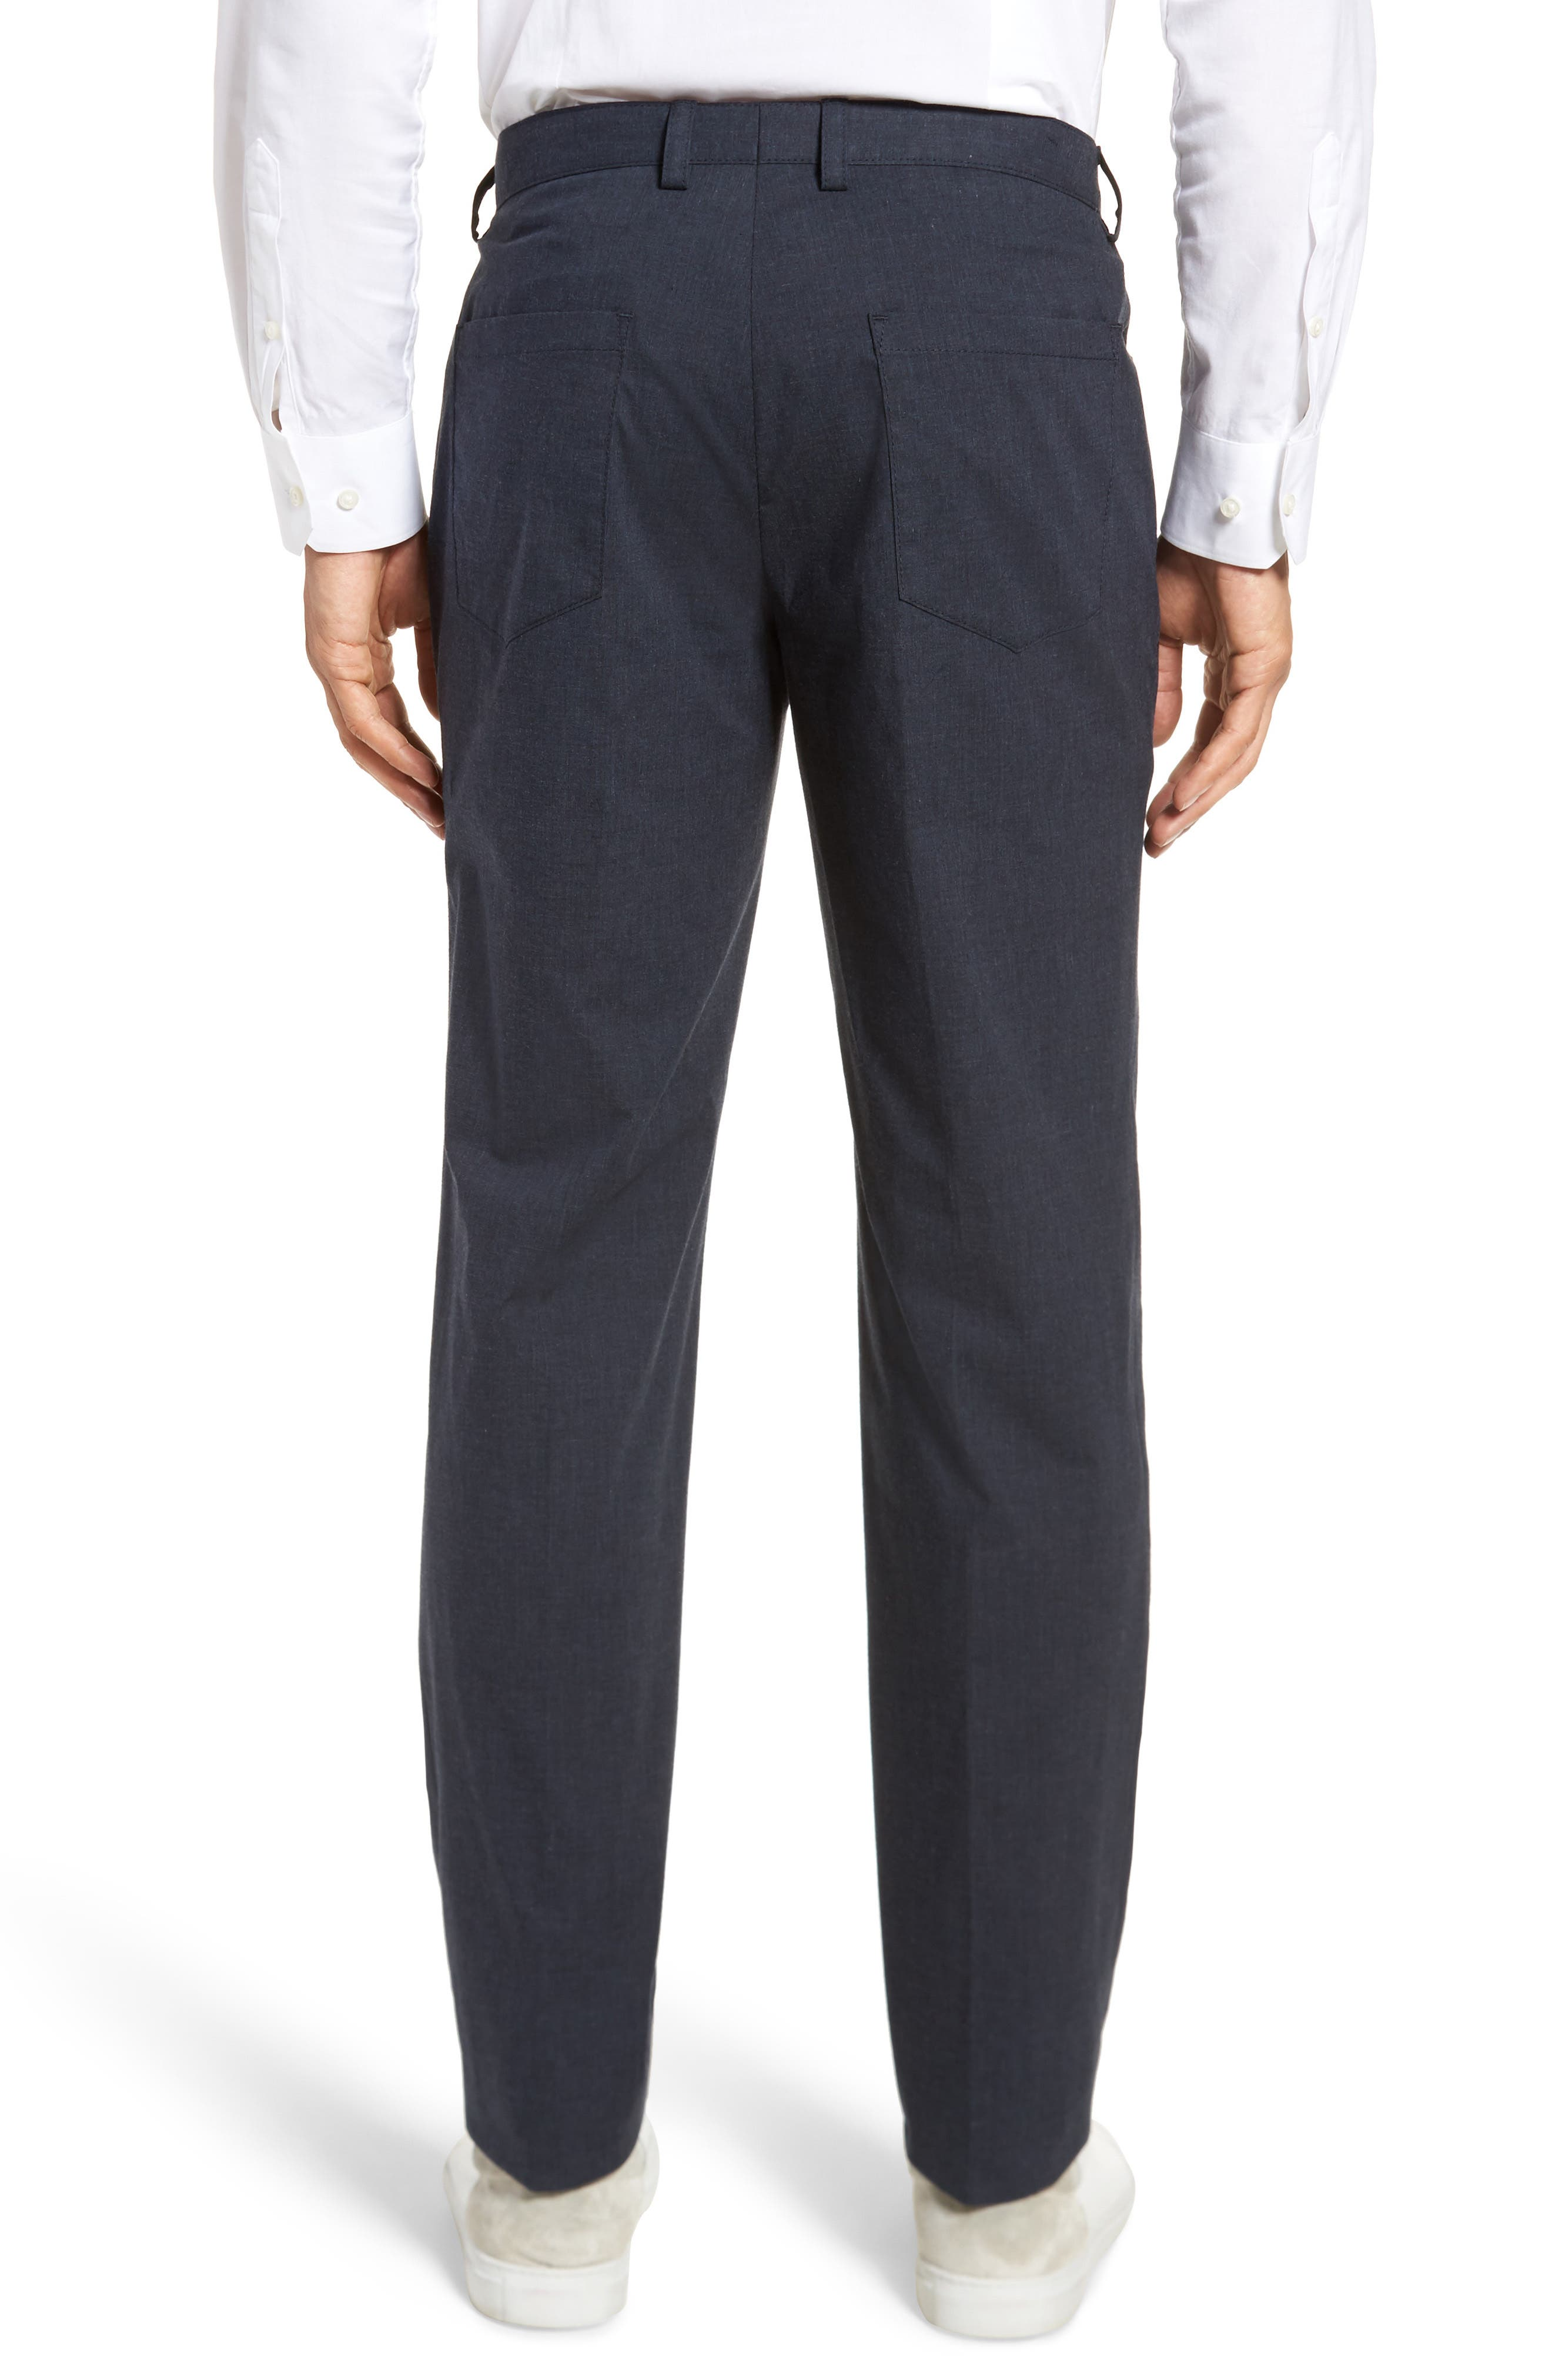 Gaetano Flat Front Stretch Solid Cotton Trousers,                             Alternate thumbnail 2, color,                             Dark Grey